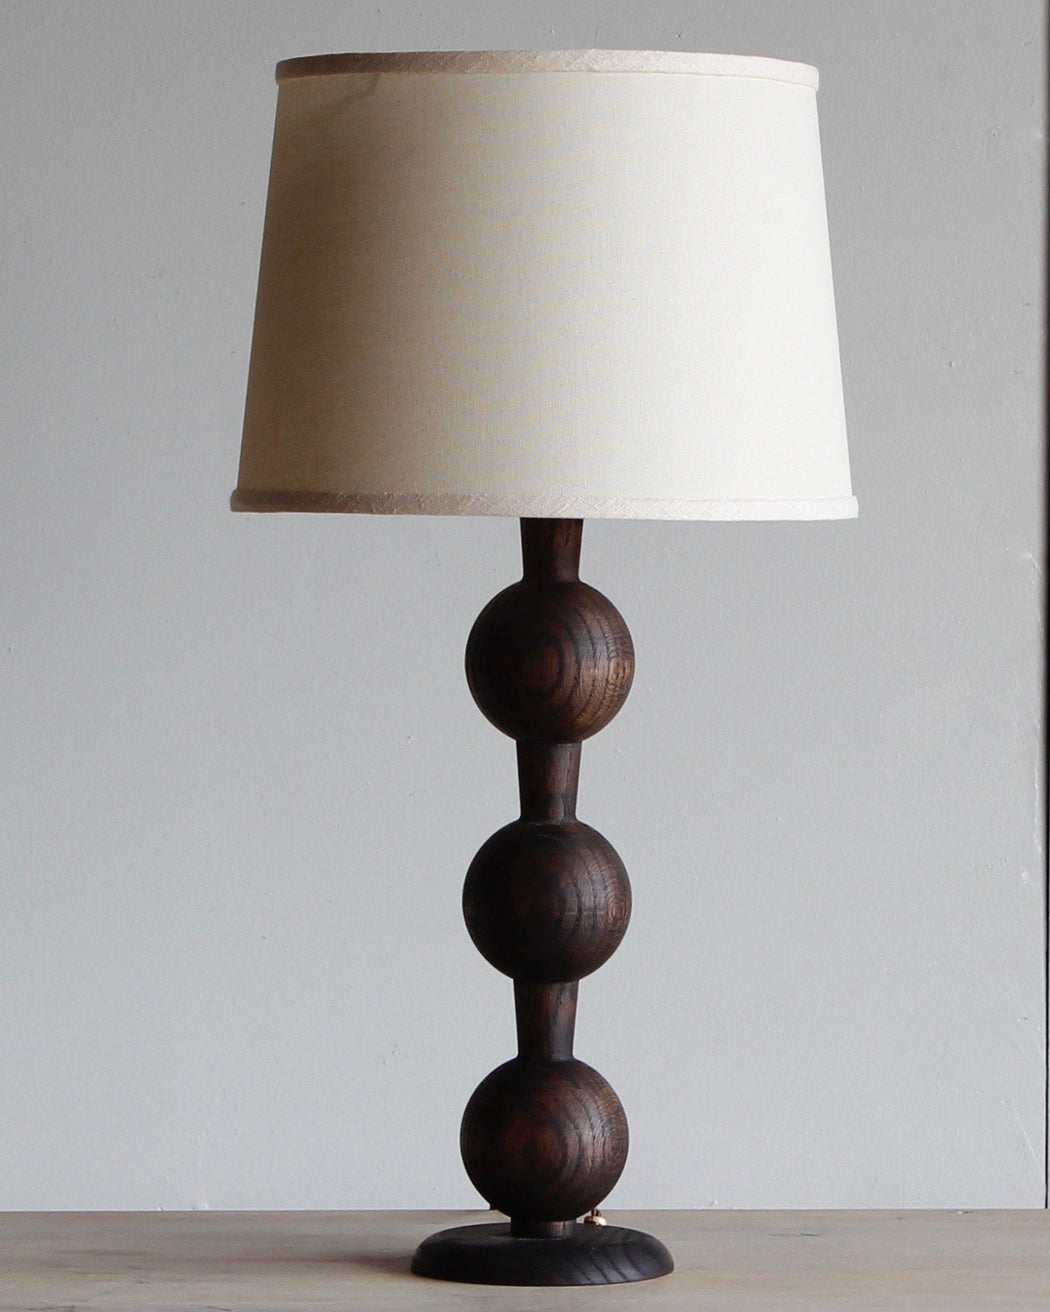 Lostine hugo wood table lamp dark wash finish ivory shade